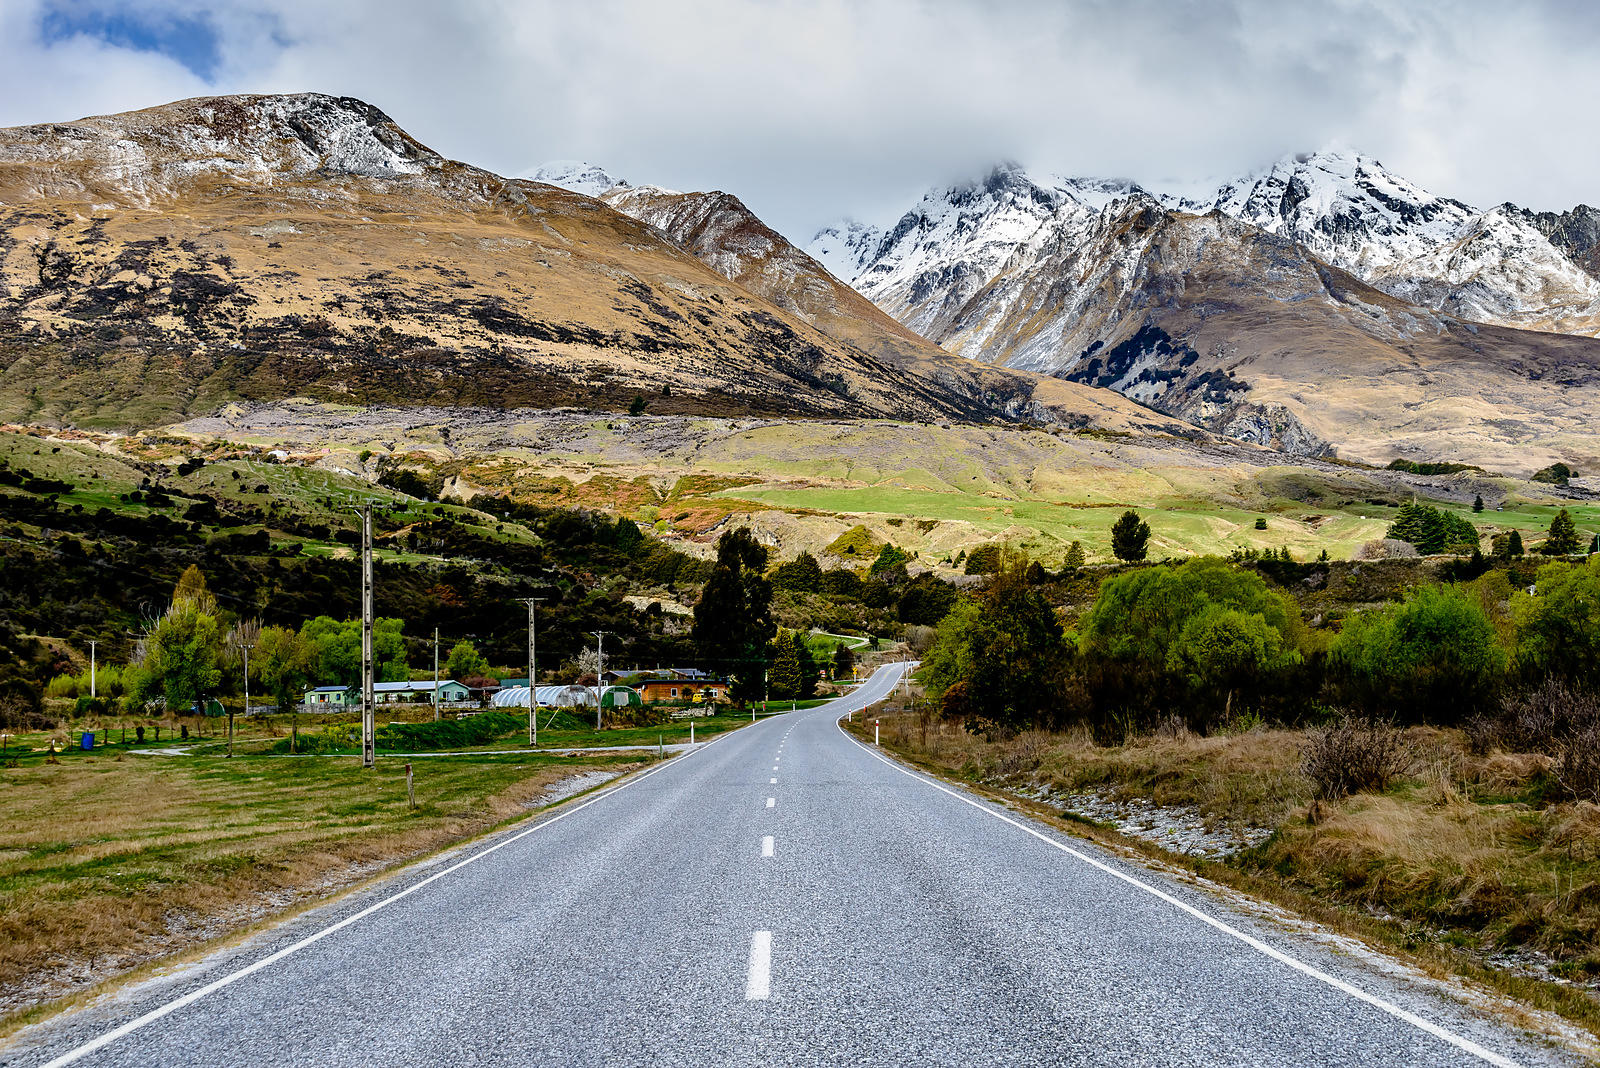 SDP-061012-nz-glenorchy-223-HR